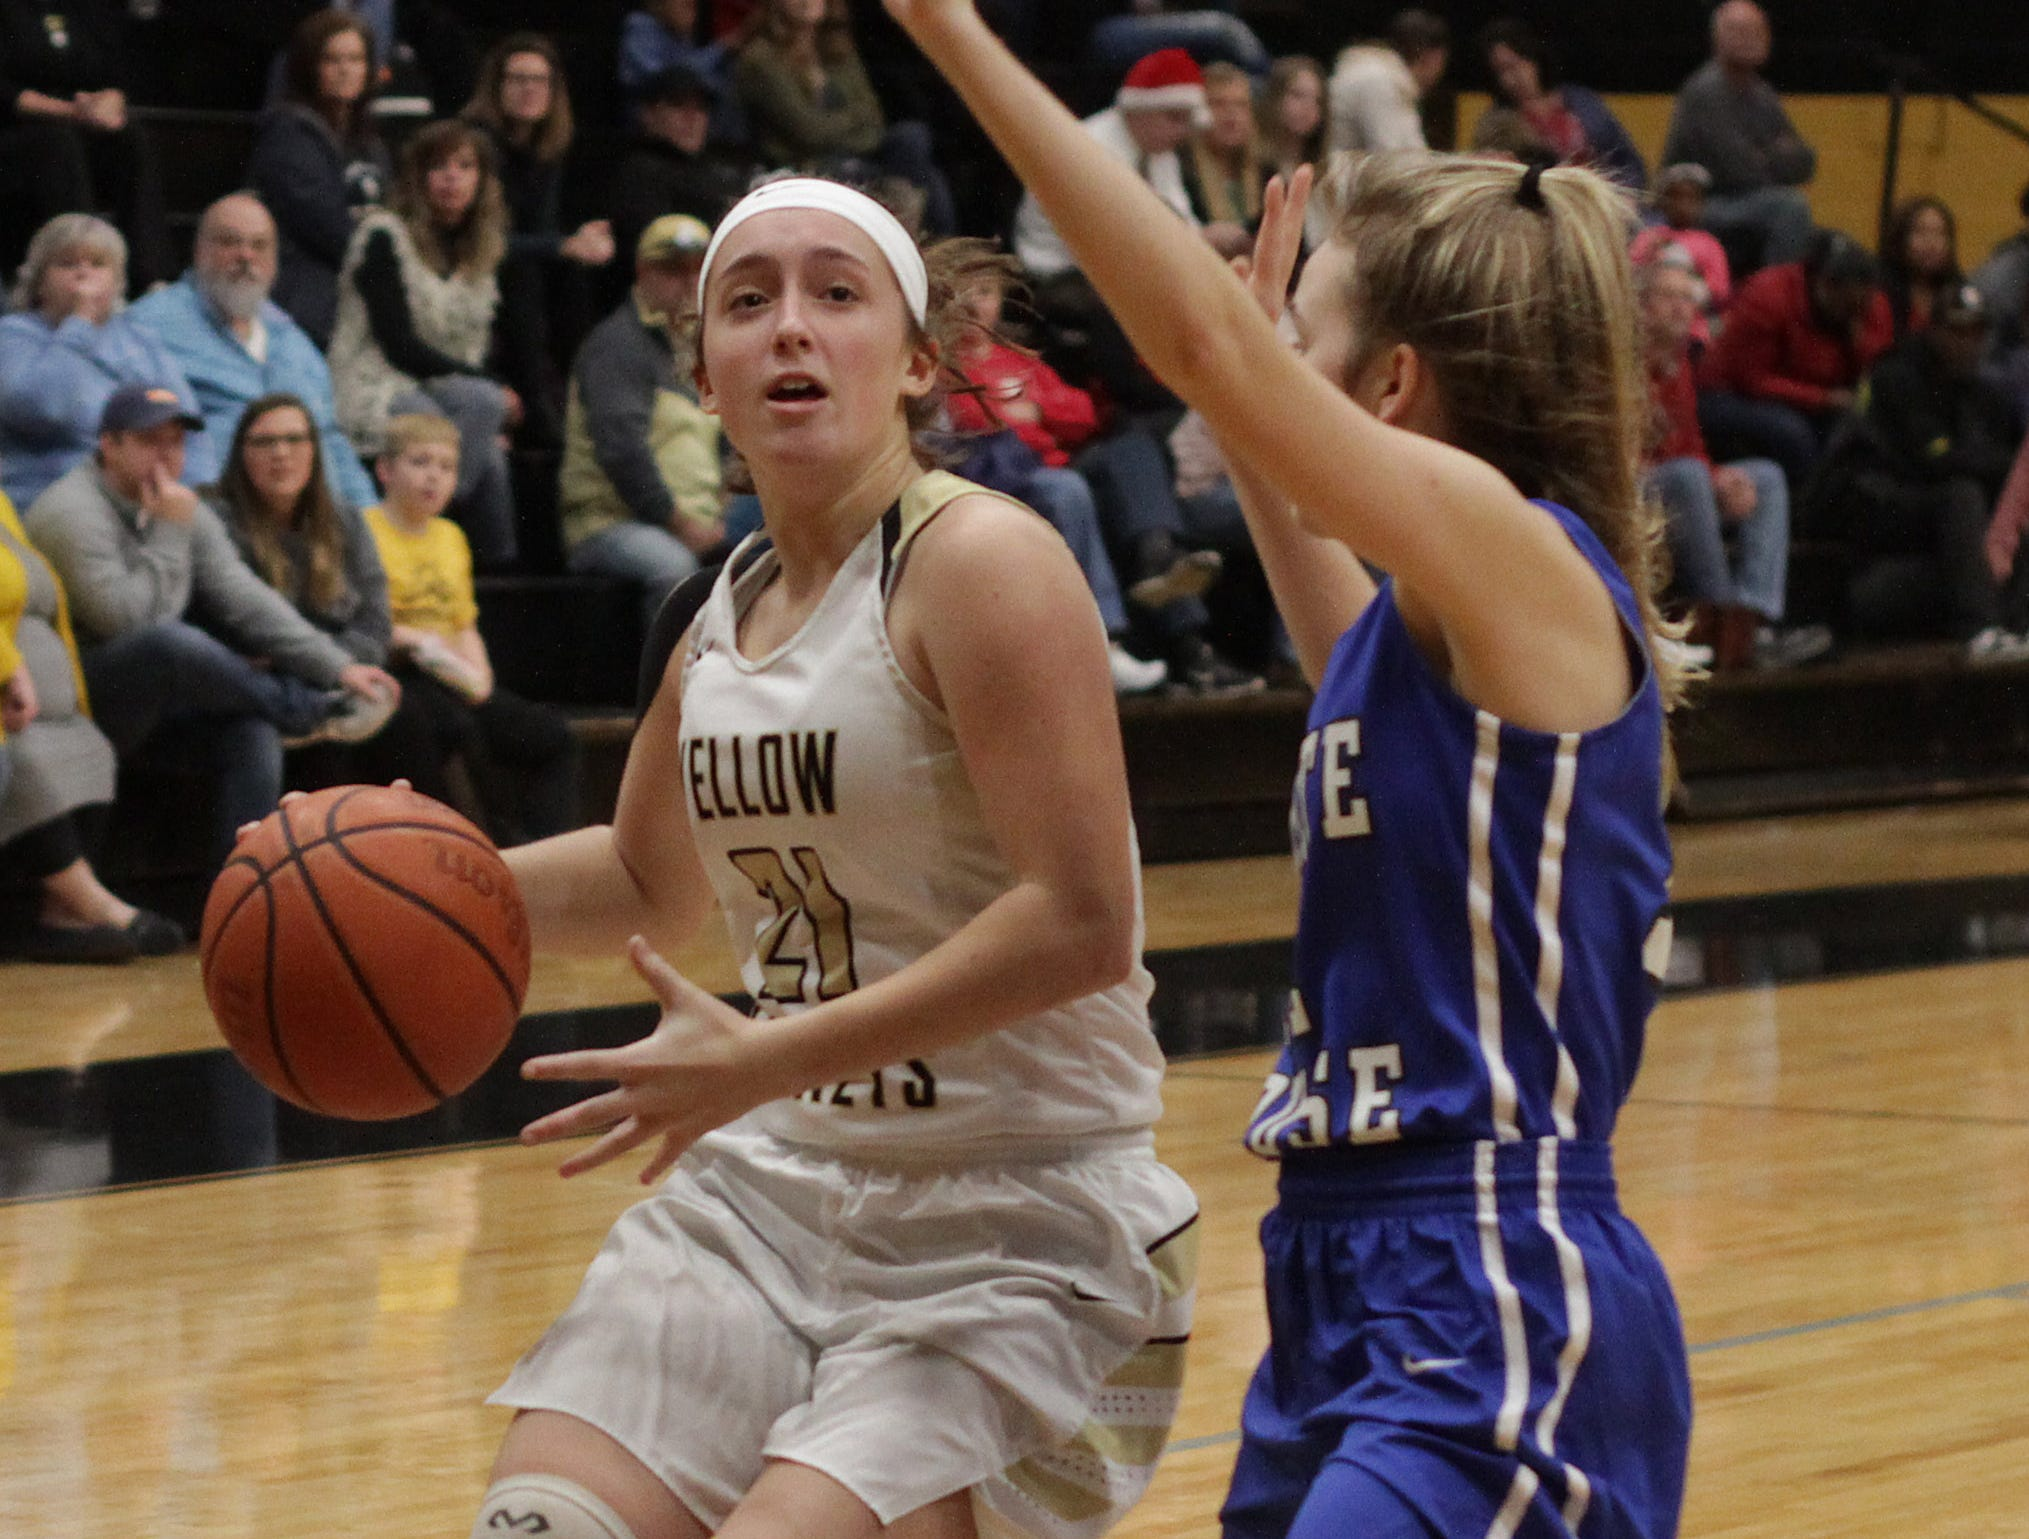 Springfield's Katie Rhooes drives against White House's Grace Maupin on Tuesday, December 18, 2018.